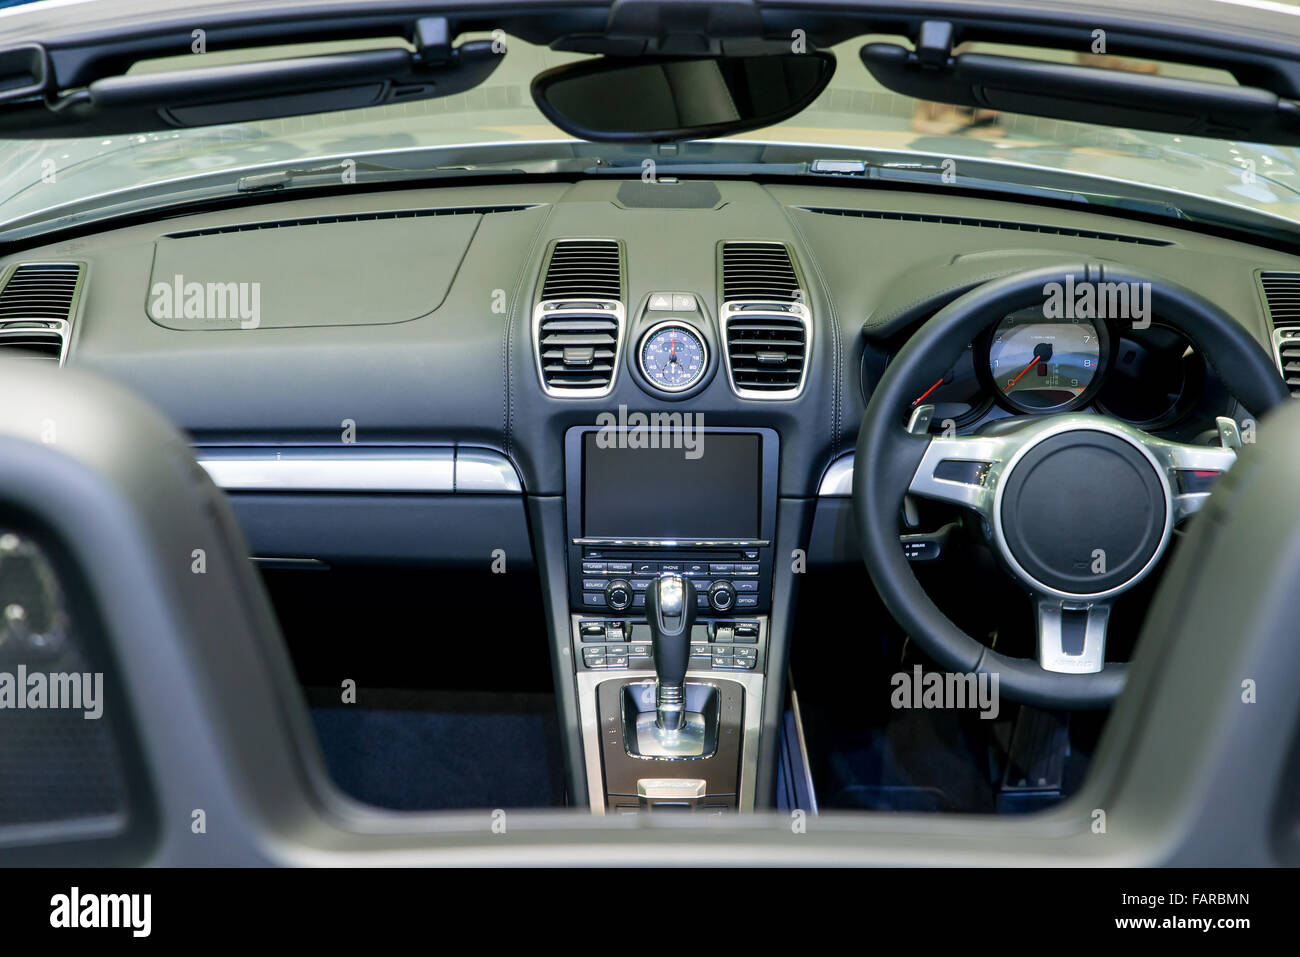 Interior of a modern automobile showing the dashboard - Stock Image